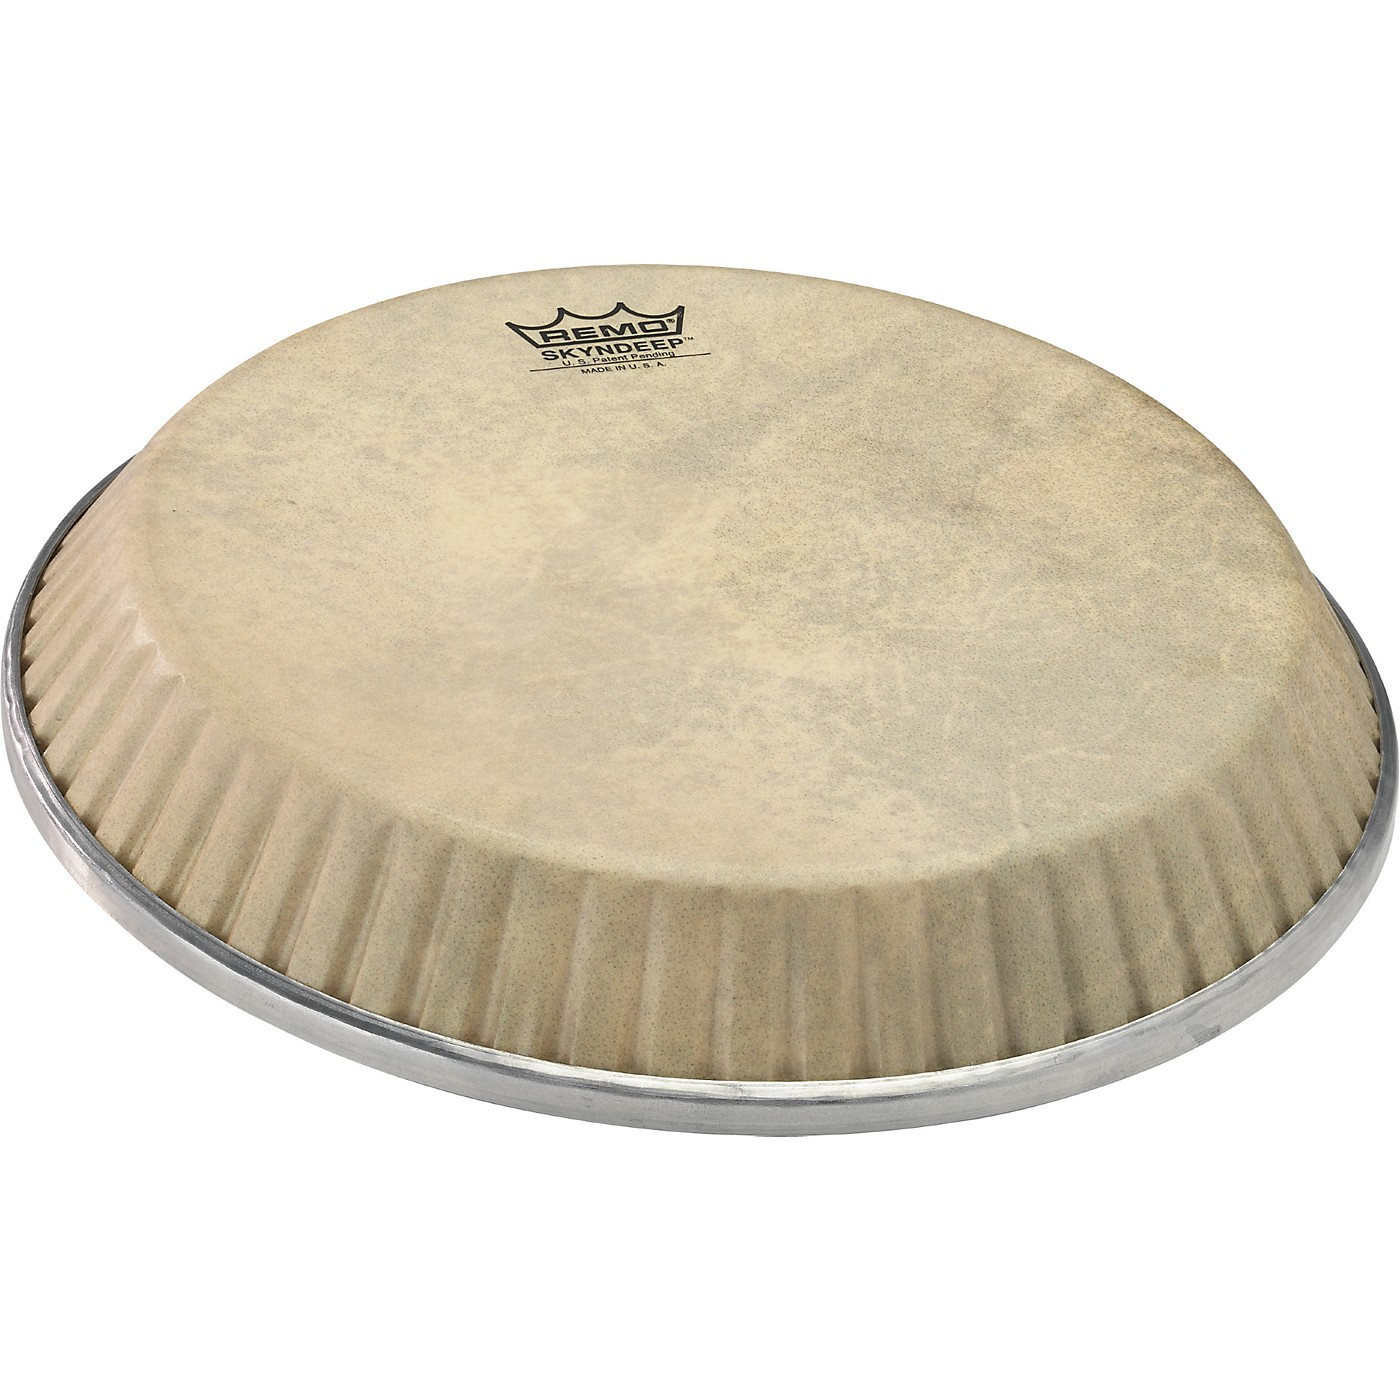 Remo Crimplock Symmetry Skyndeep D4 Conga Drumhead thumbnail